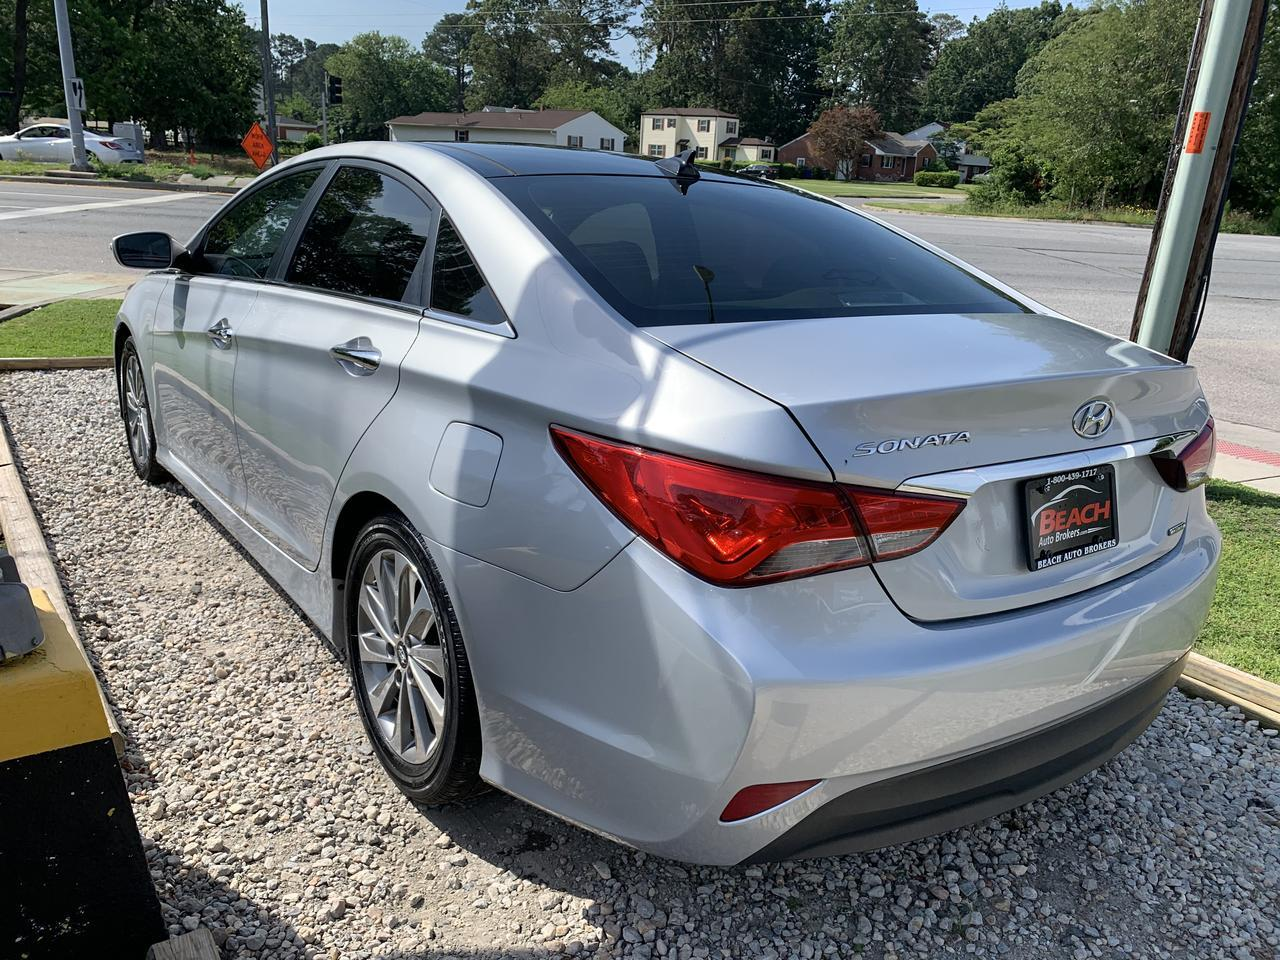 2014 HYUNDAI SONATA SONATA LIMITED, WARRANTY, LEATHER, SUNROOF, NAV, HEATED/COOLED SEATS, BACKUP CAM! Norfolk VA